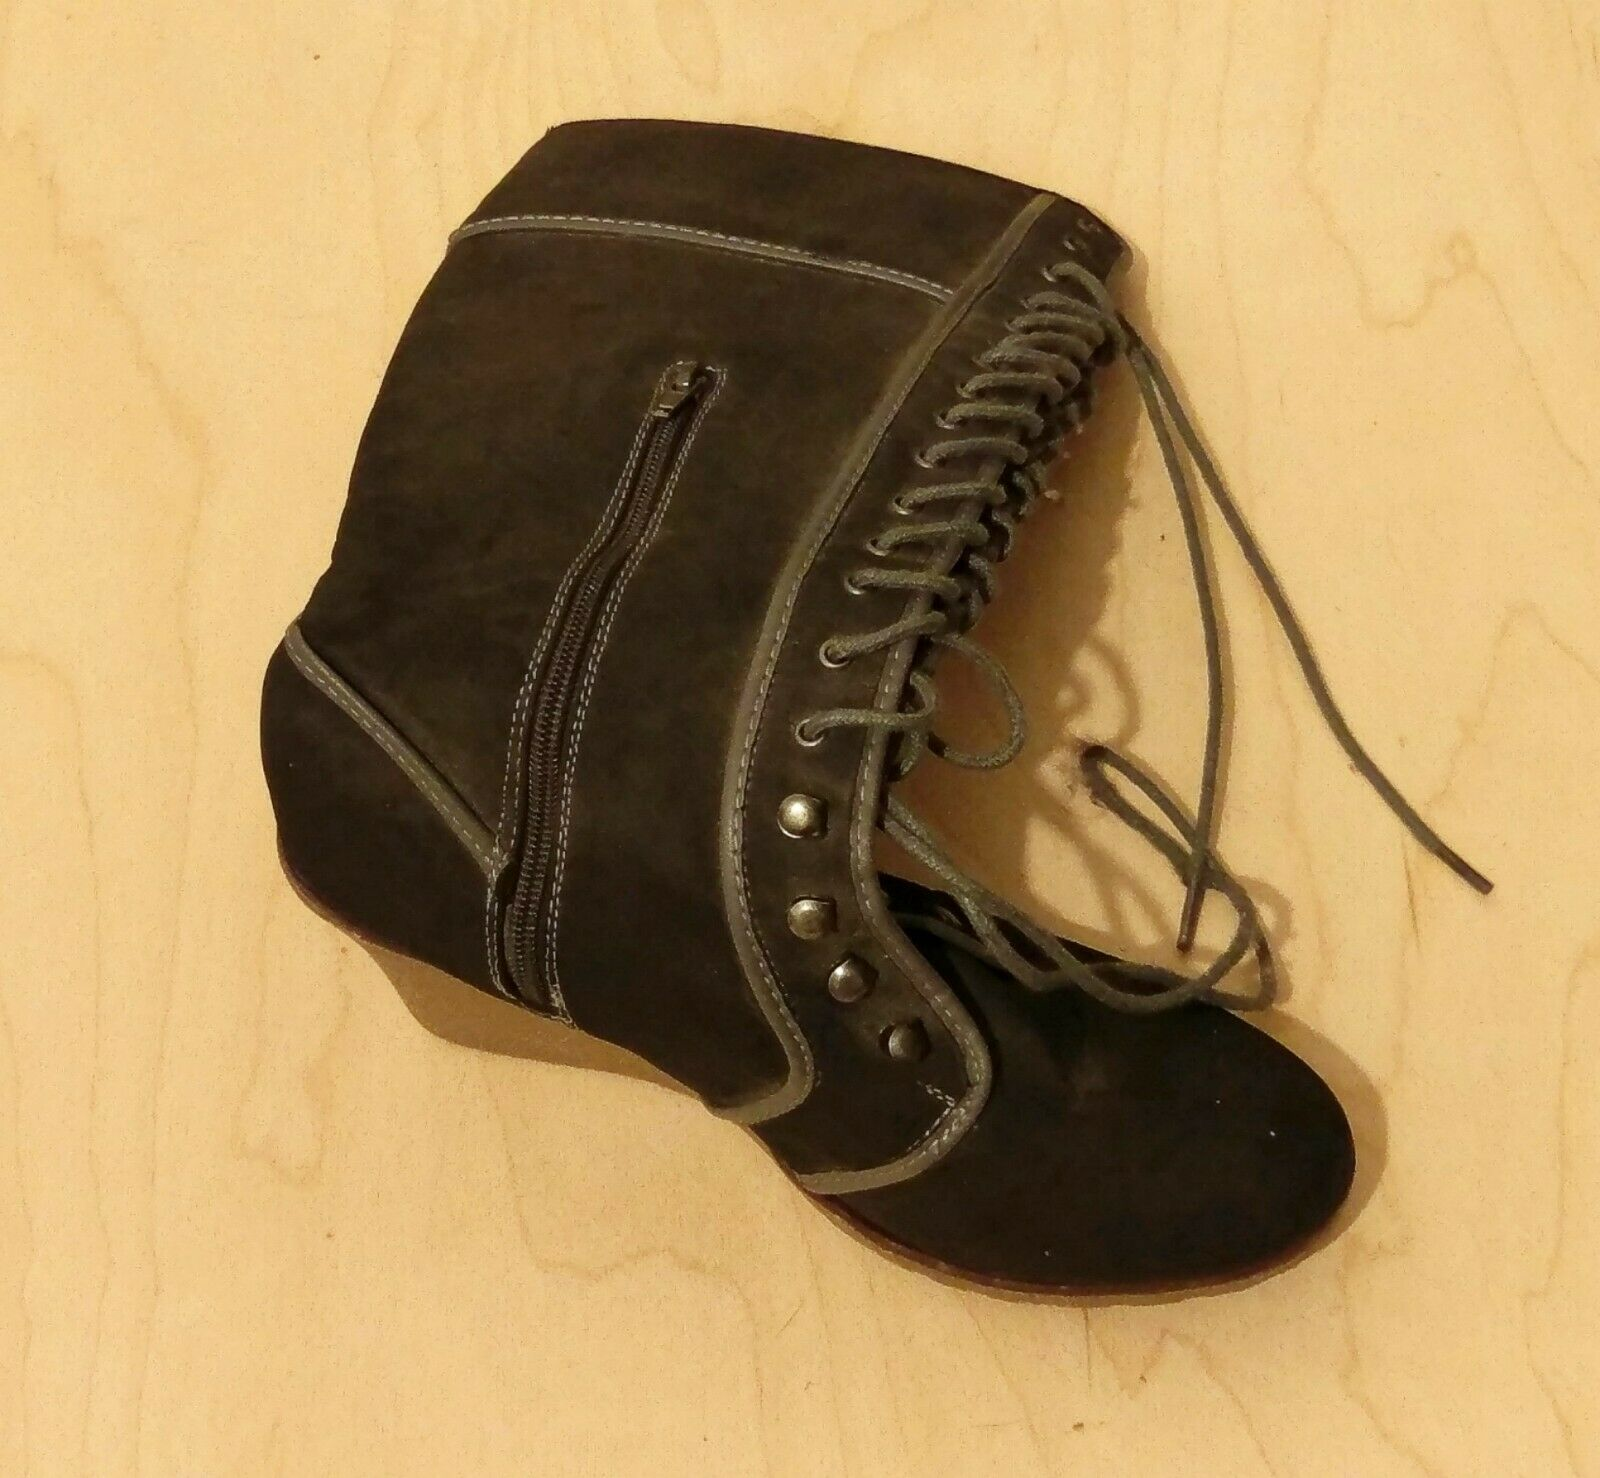 Grey Lace Up Suede Knee High Wedge Heel Boots Size 7